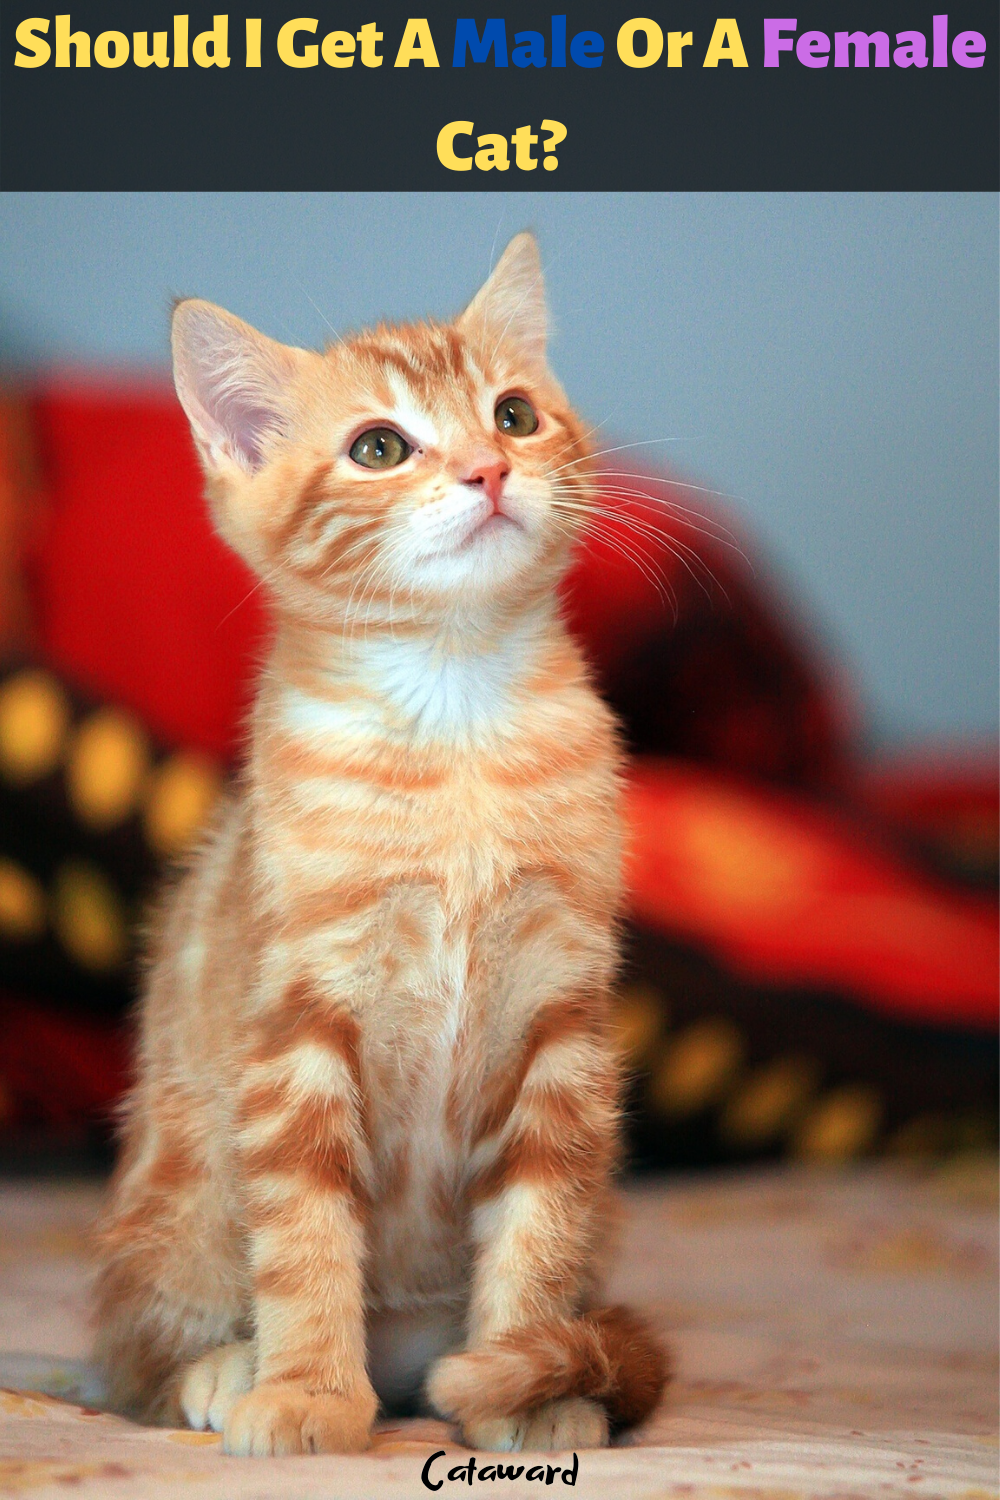 Tips For Adopting A Kitten In 2020 Kitten Adoption Cat Parenting Cat Care